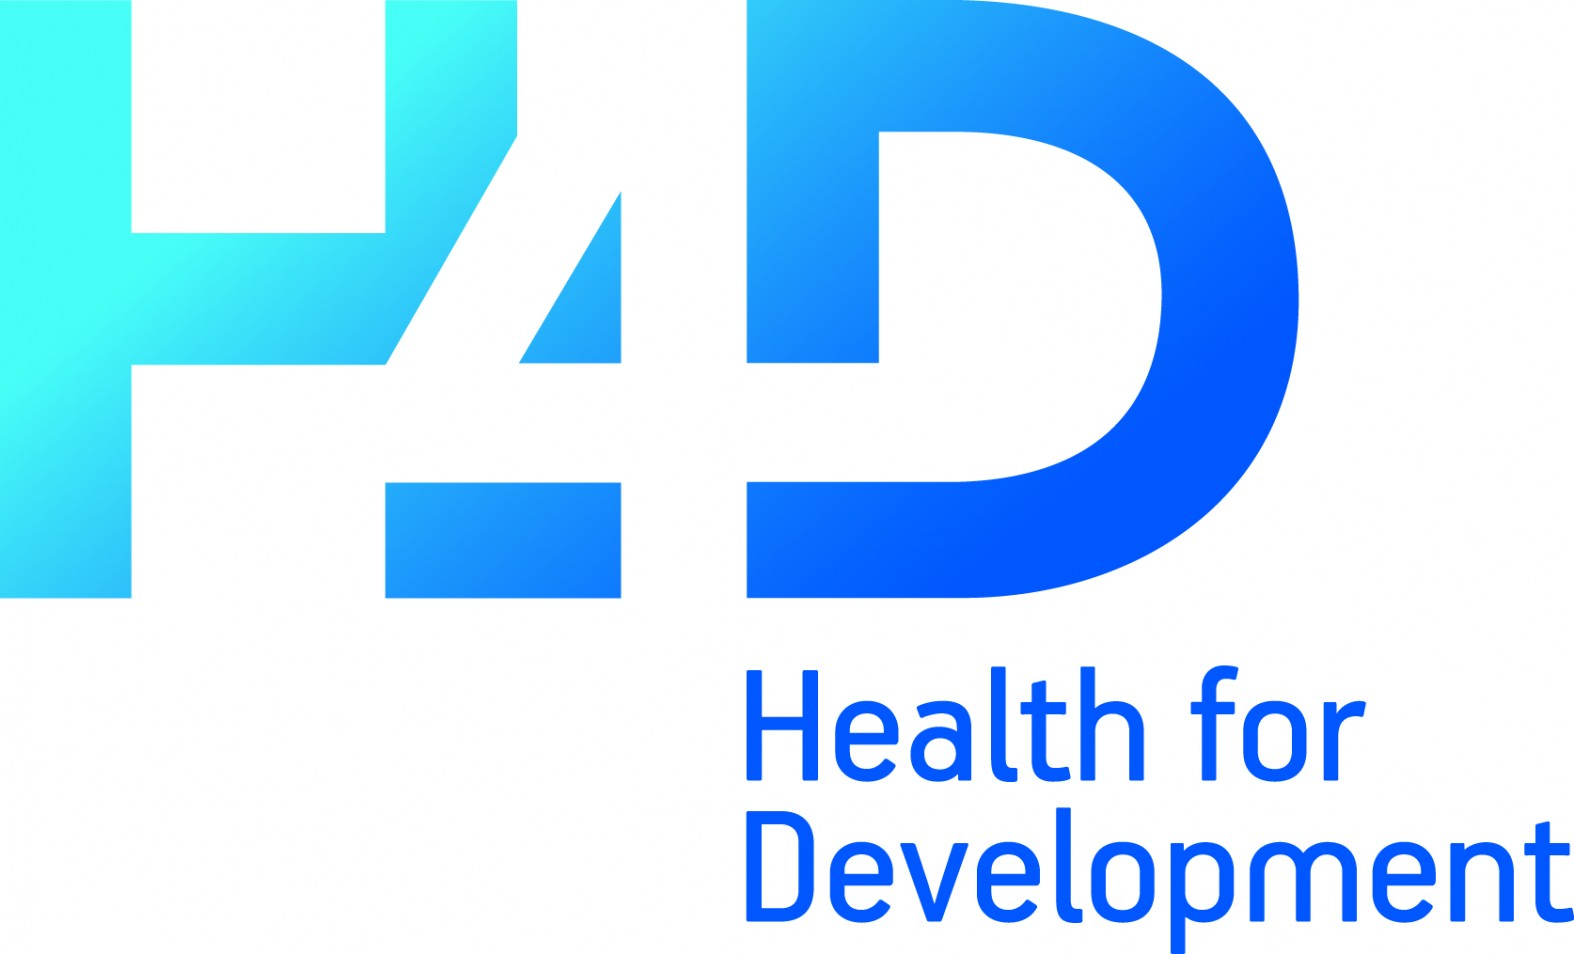 Health for Development